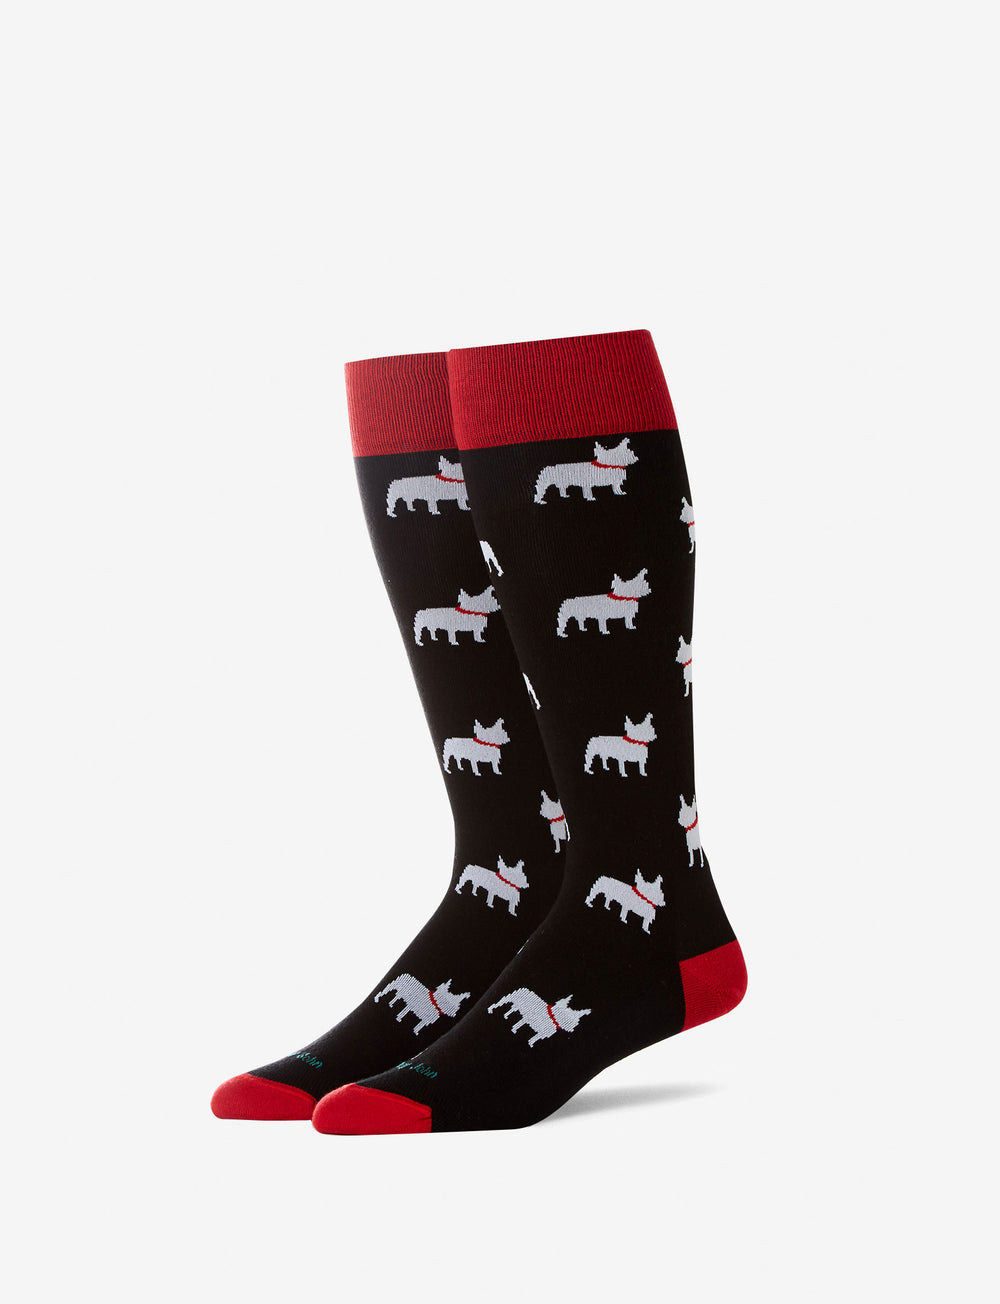 French Bulldog Stay Up Dress Sock Details Image